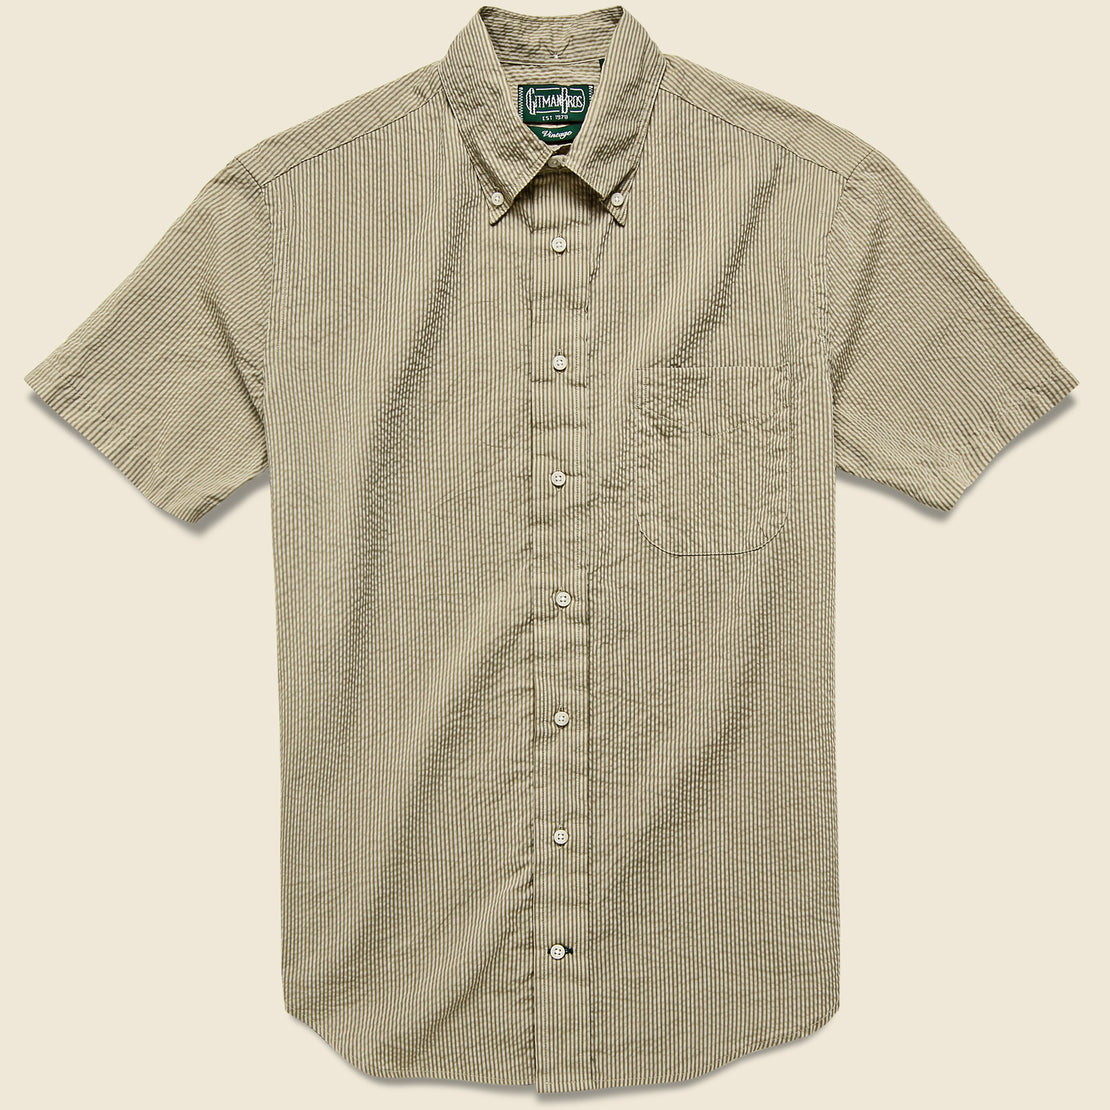 Gitman Vintage Tonal Stripe Seersucker Oxford Shirt - Khaki